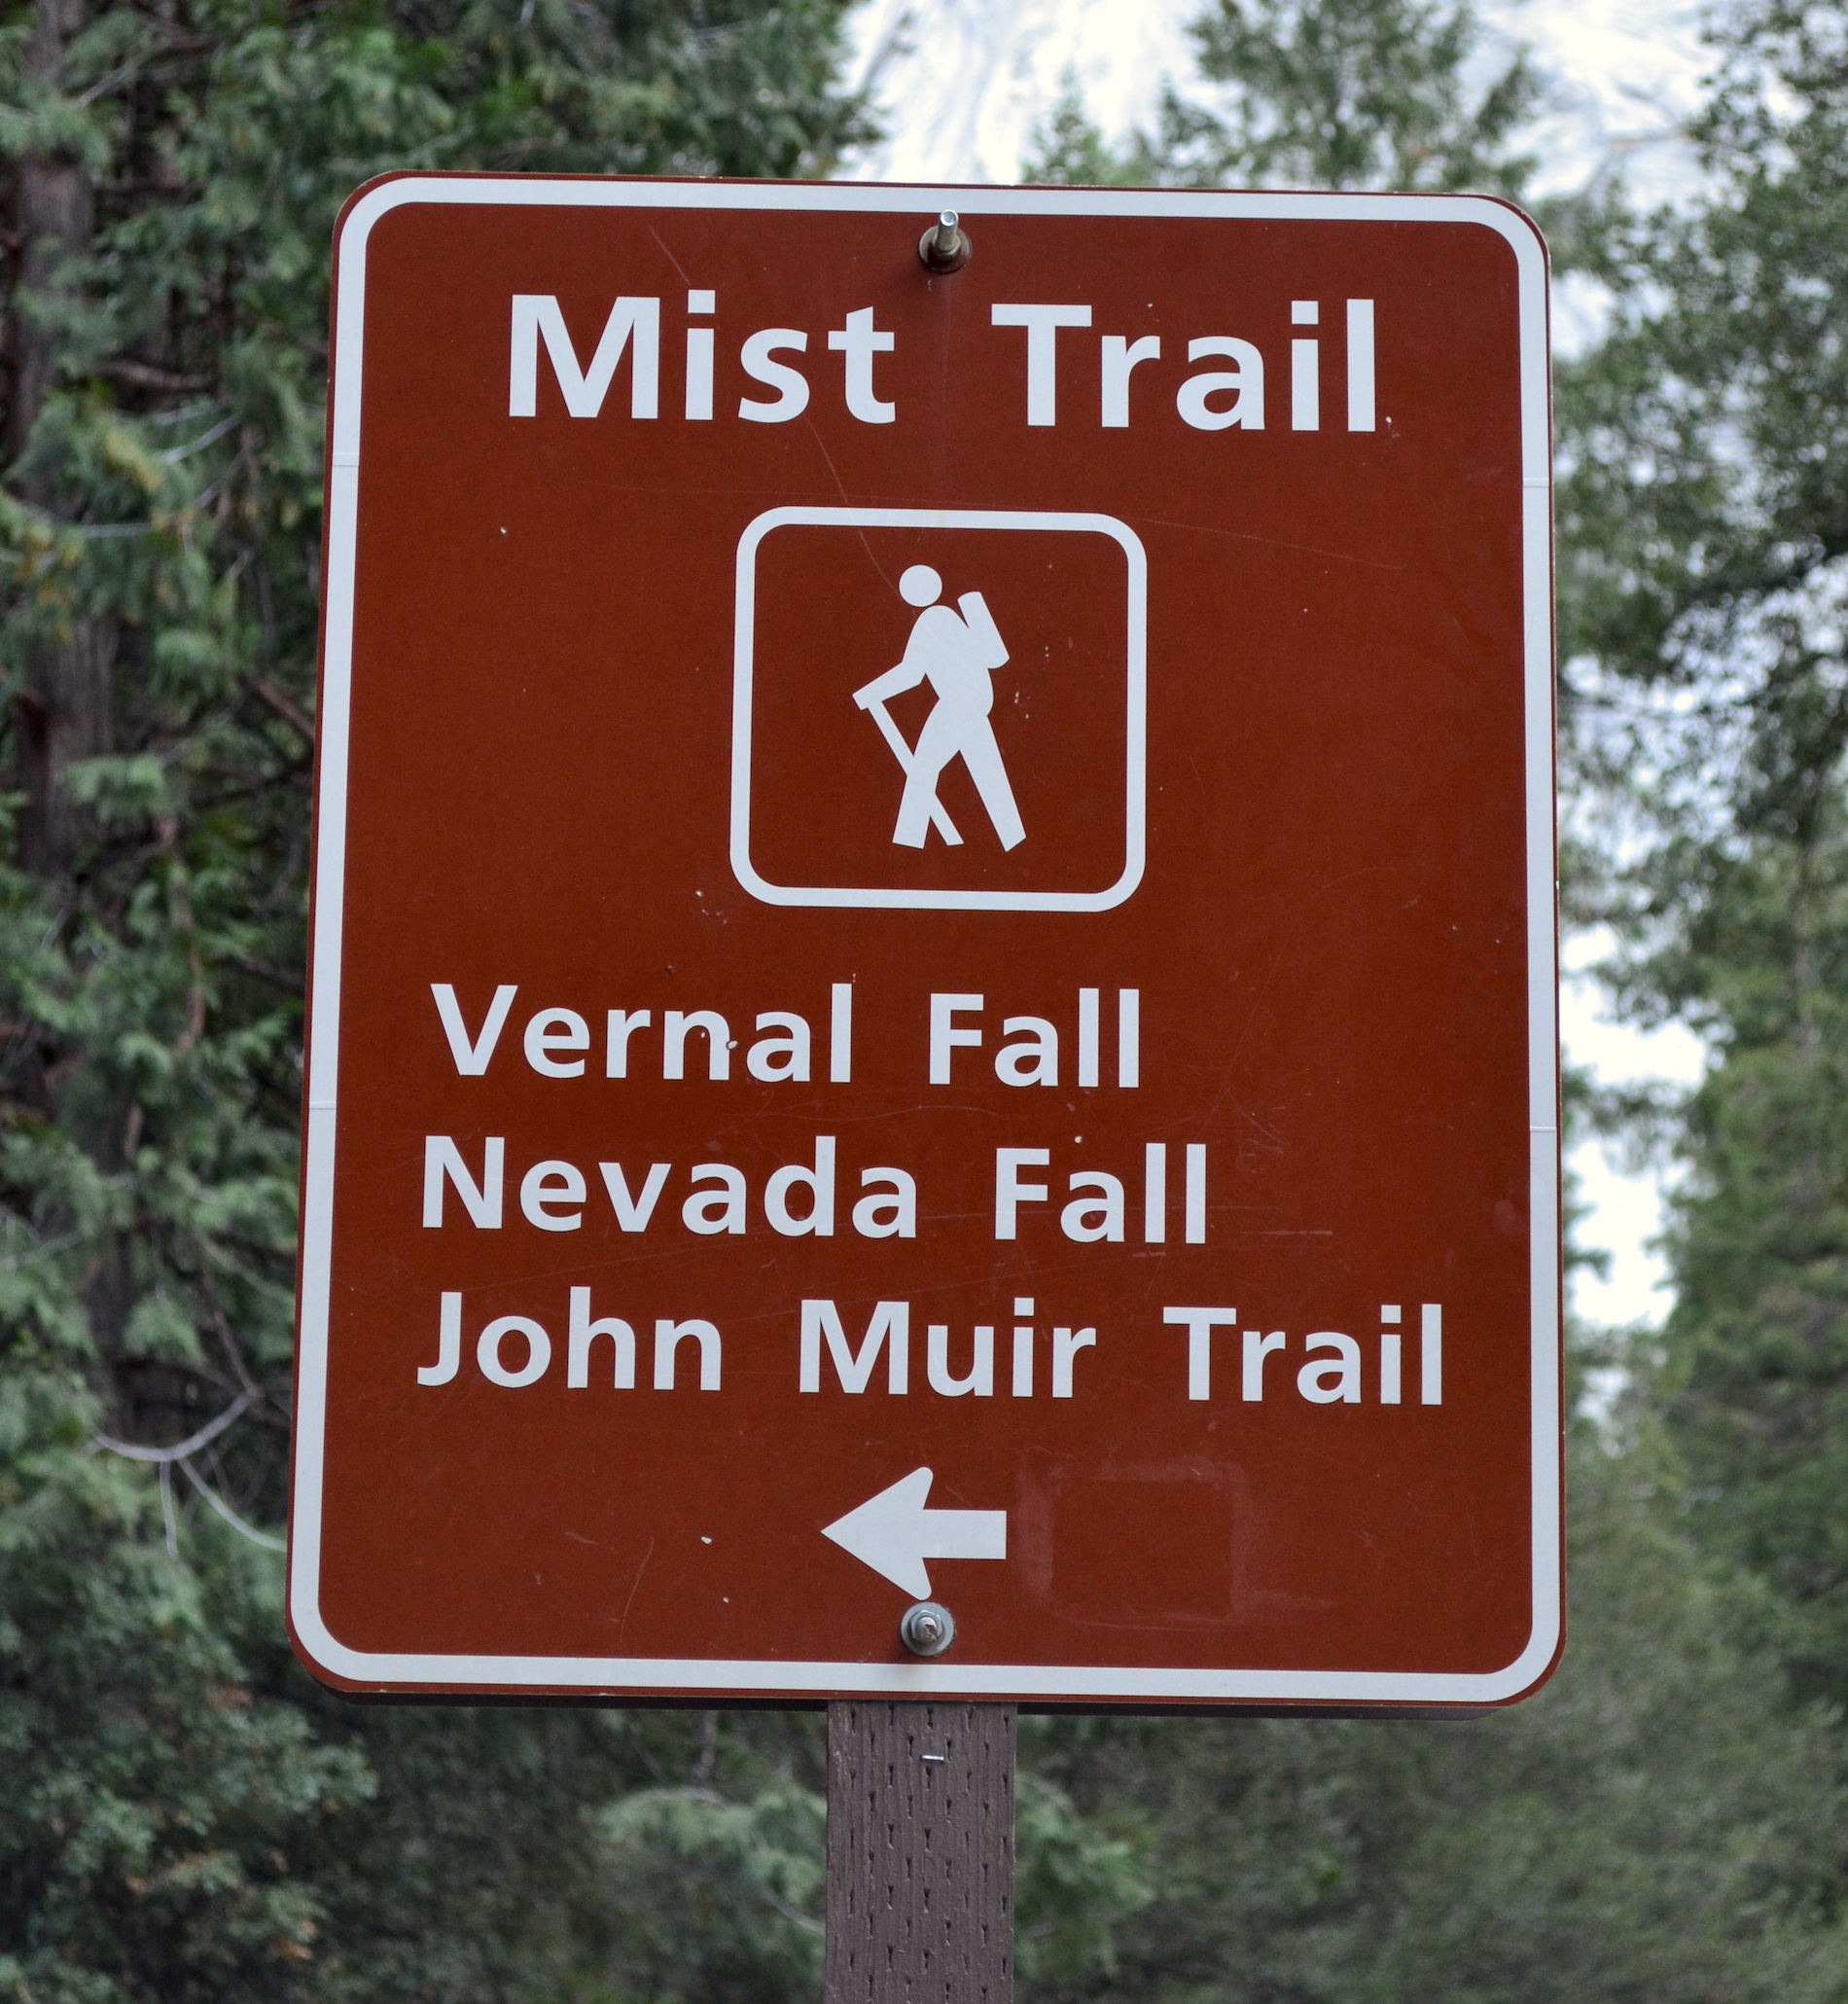 Trails from John Muir Trail-head carpark